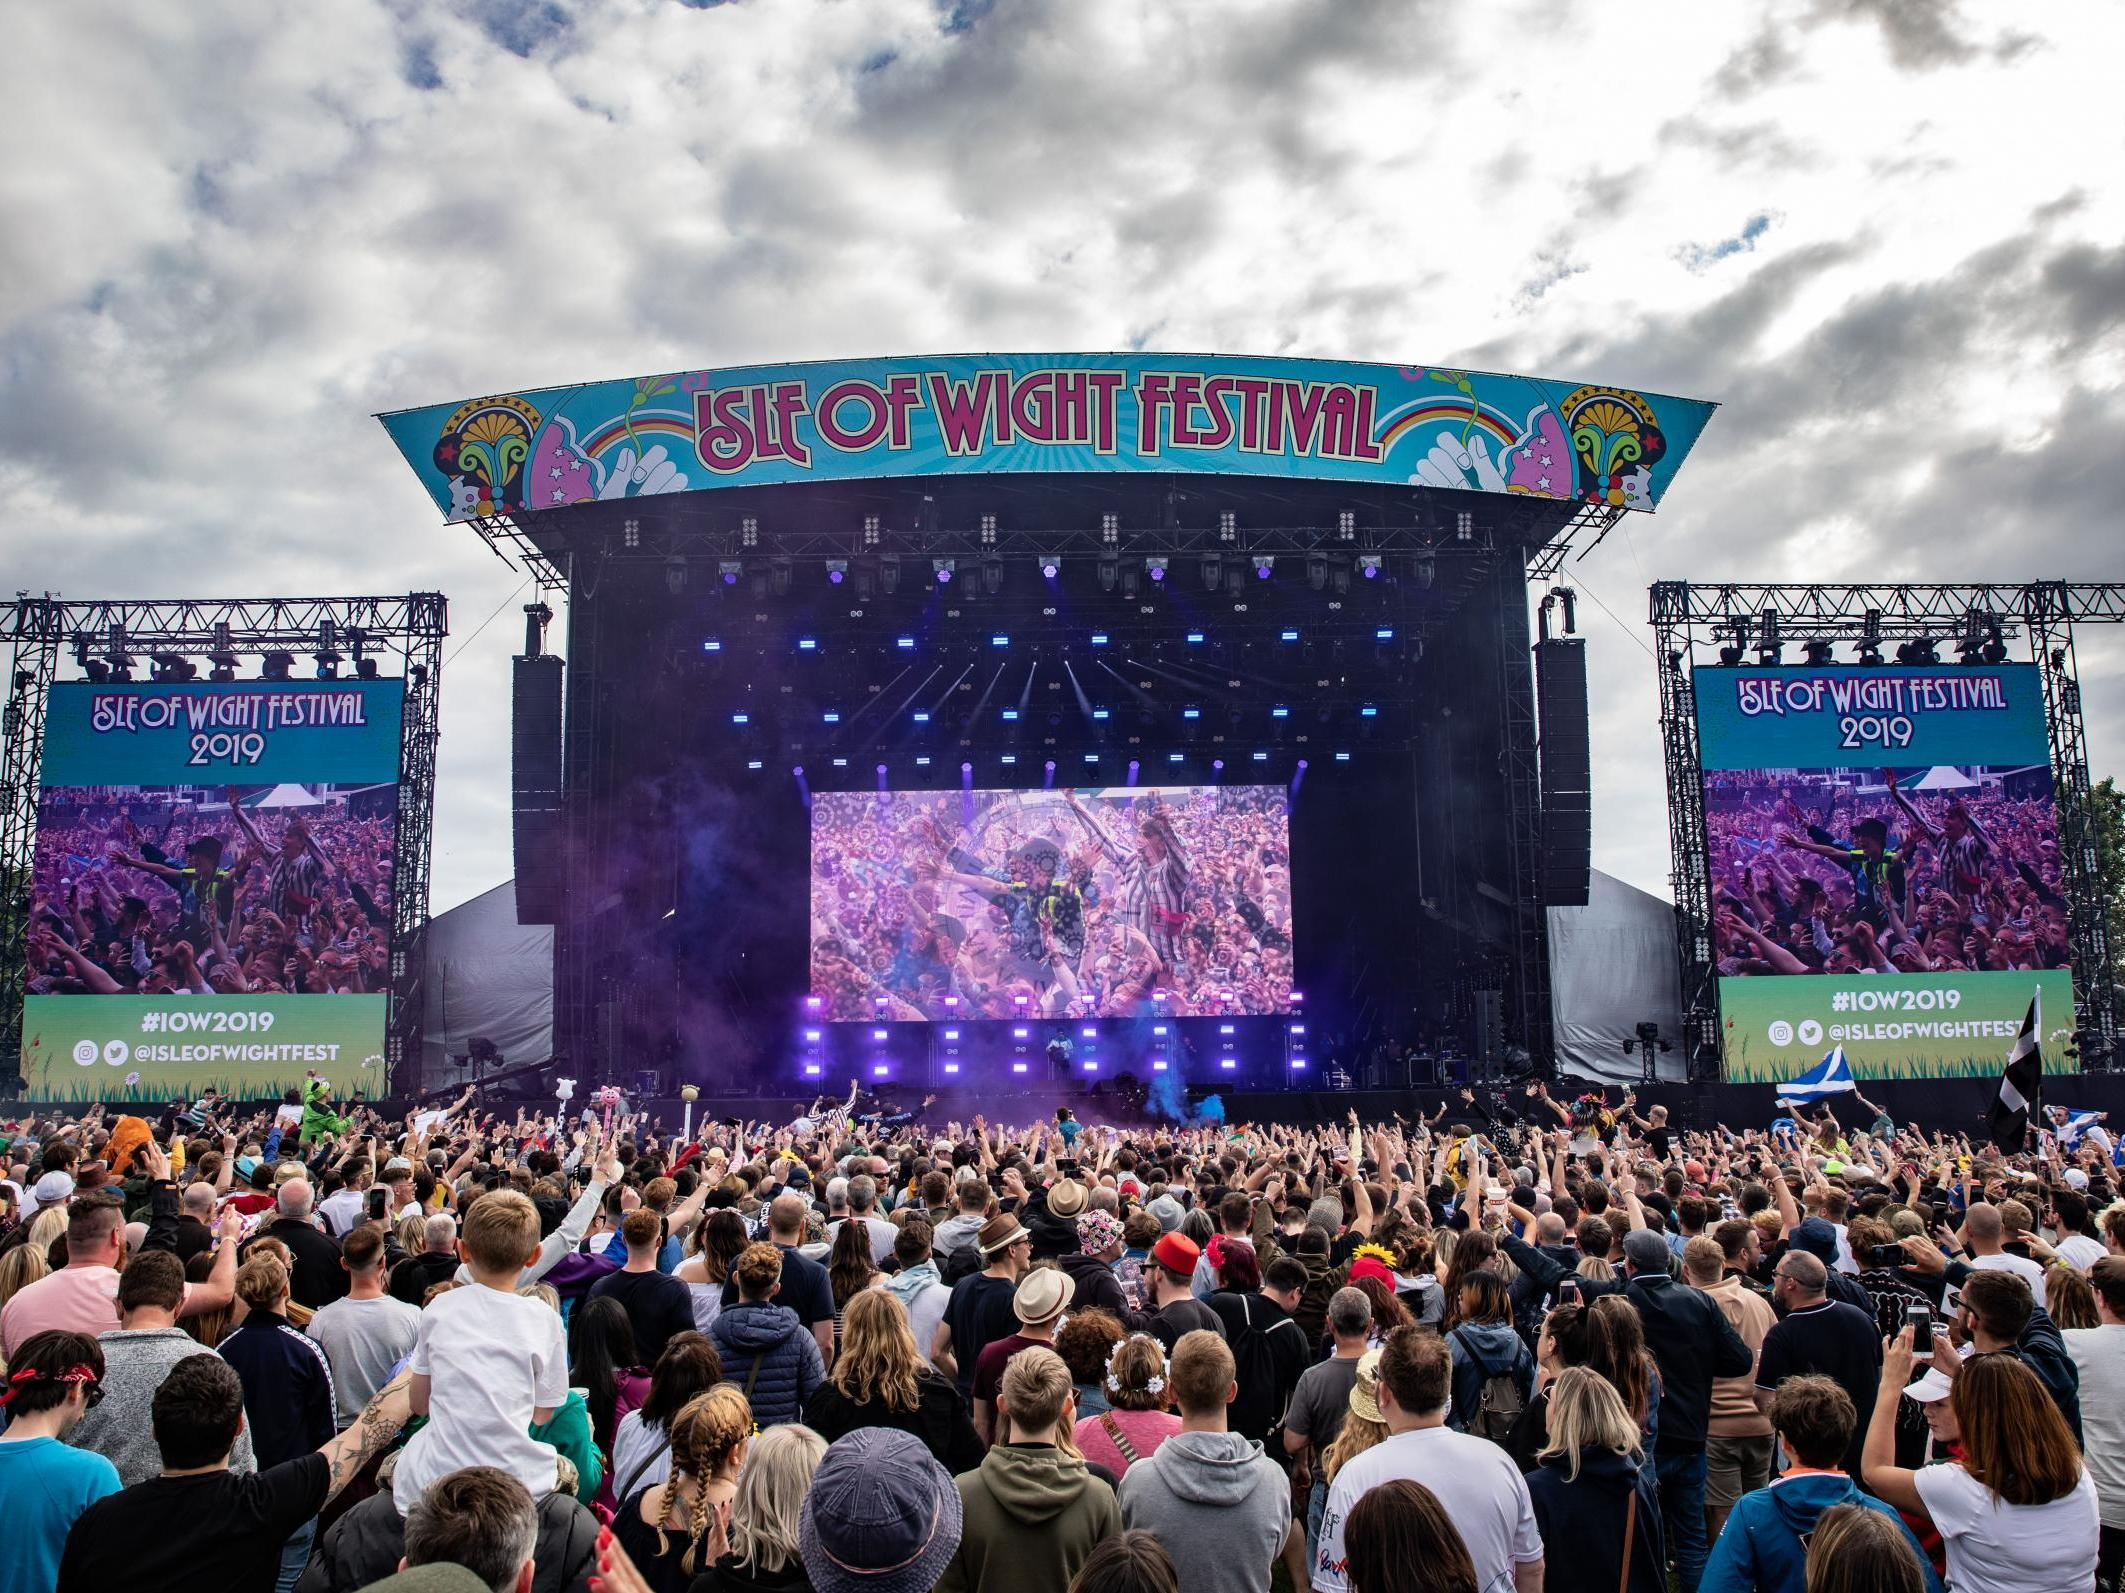 isle-of-wight-iow-festival-watch-highlights